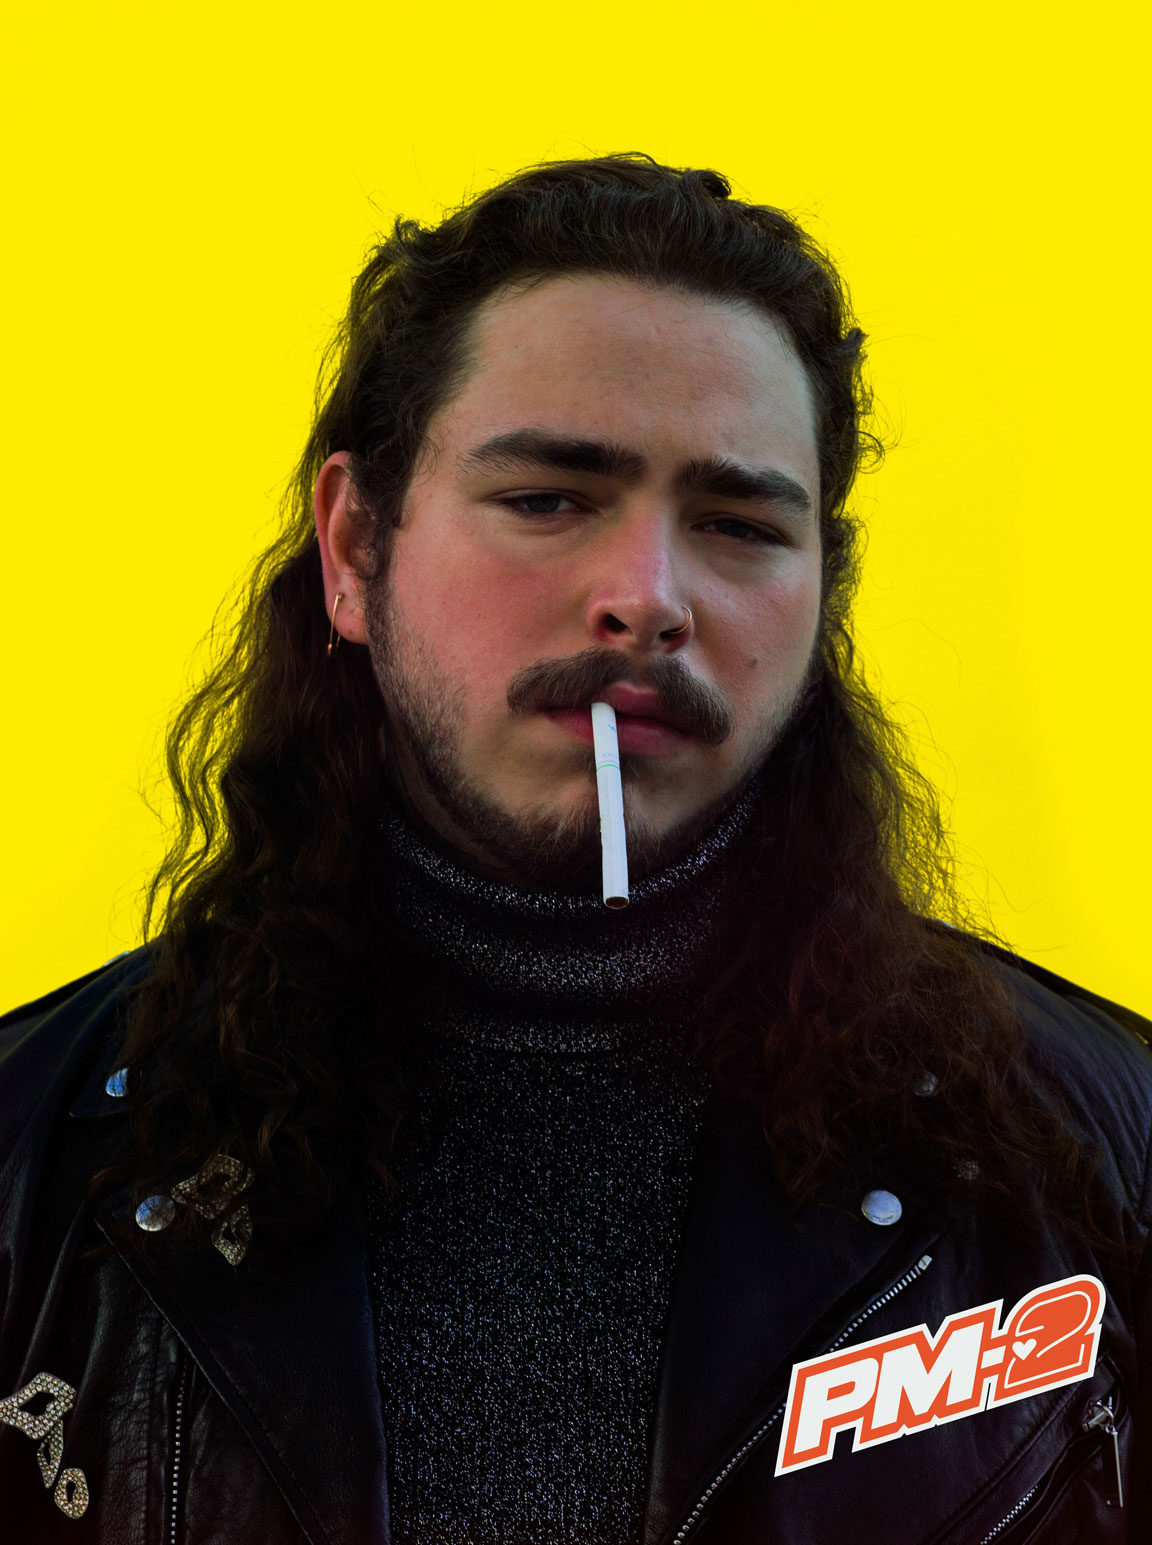 Post Malone S Knuckles: Review: Post Malone's Long-anticipated Sophomore Album